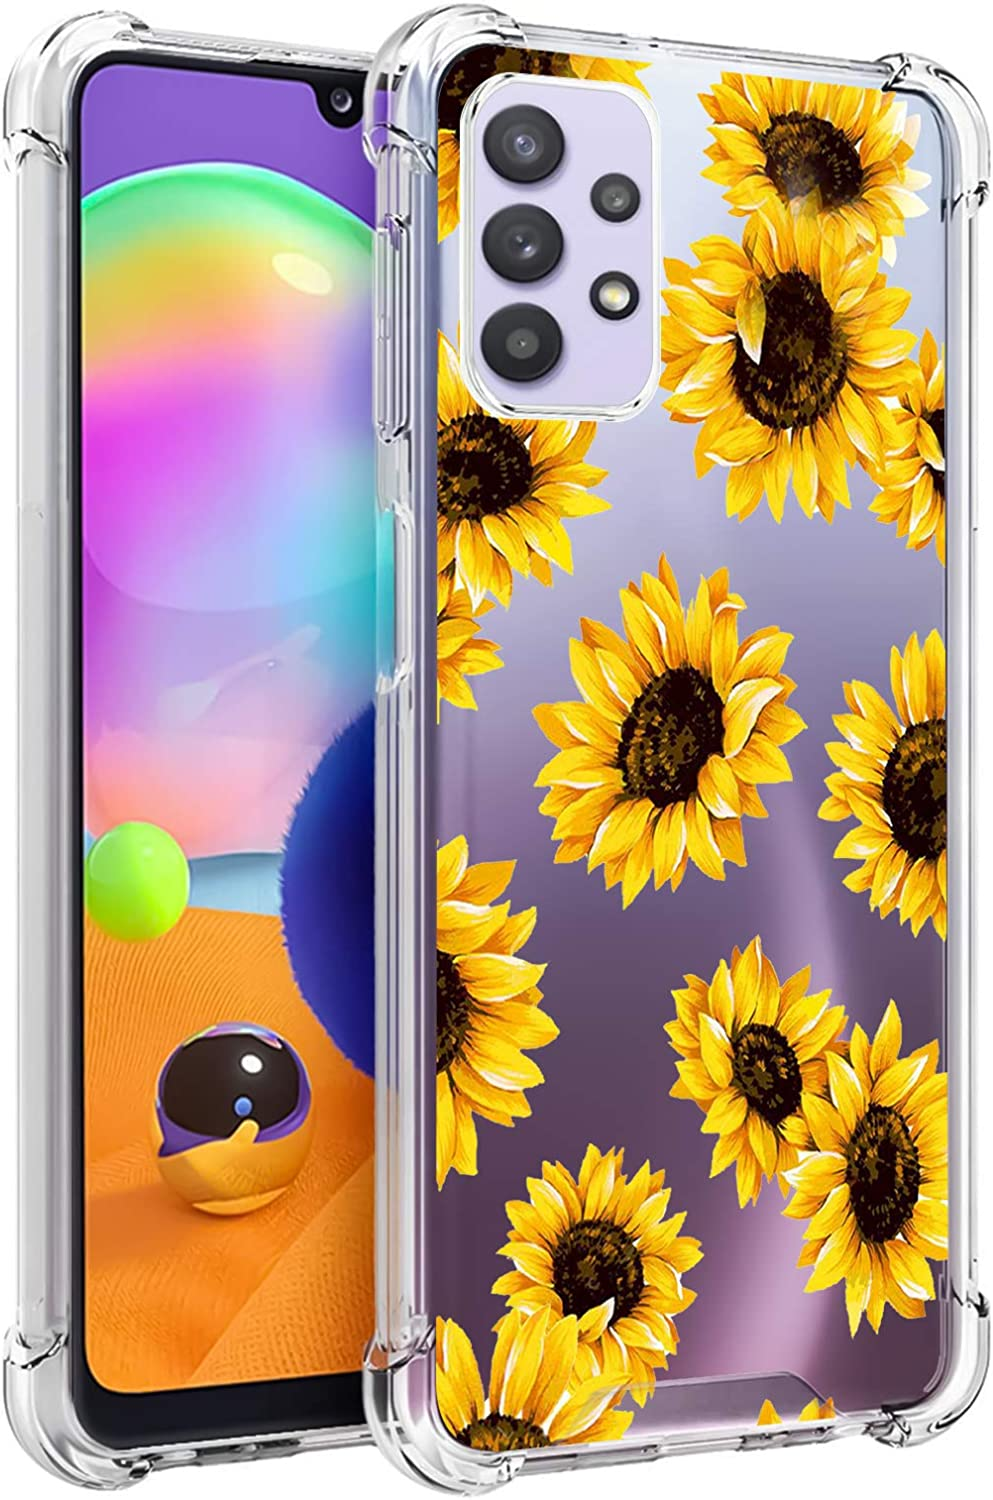 LSL Samsung Galaxy A32 5G Clear Case Sunflower Floral Cute Design Pattern Hard PC Back + Soft TPU Edges Full Body Protection Wireless Charging Cover for Galaxy A32 5G 6.5 Inch